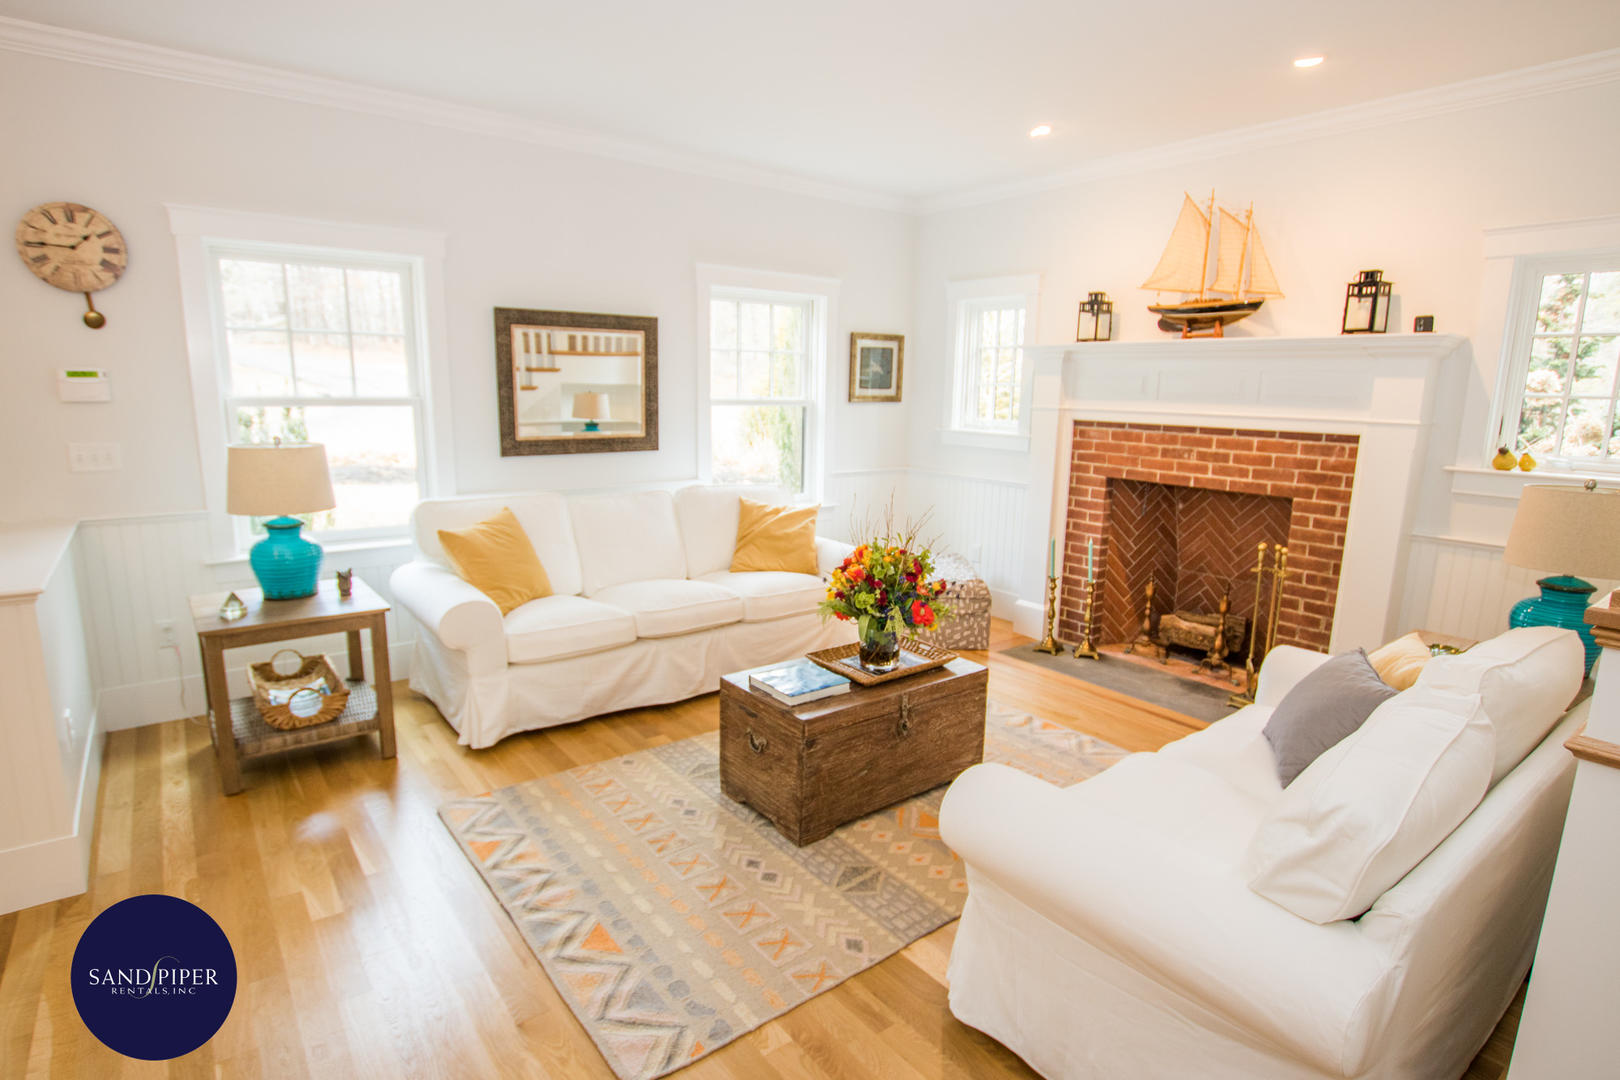 Edgartown 4 bedroom house rental downtown close to the beach in Marthas Vineyard